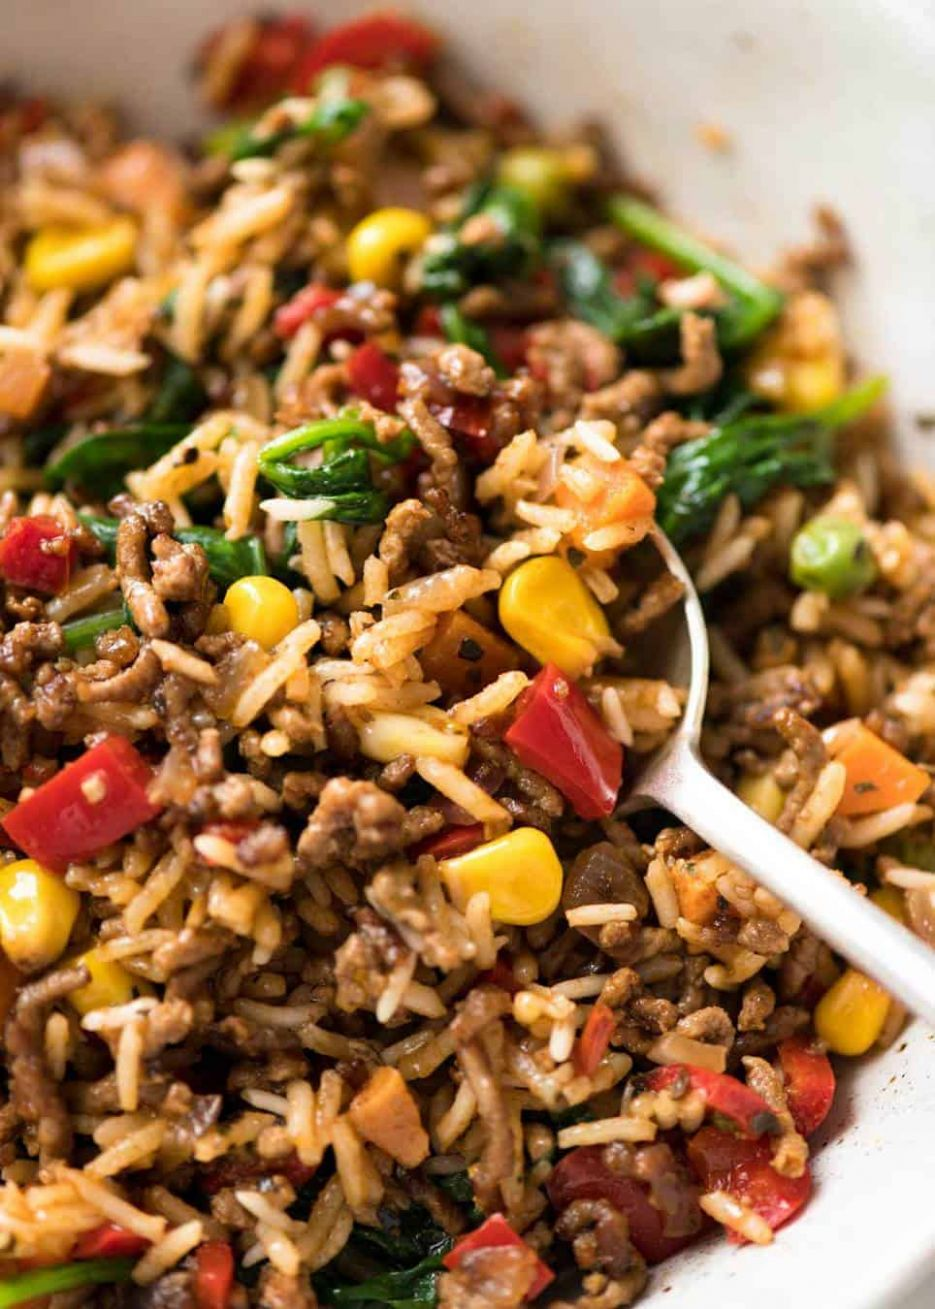 Beef and Rice with Veggies - Easy Recipes Made With Ground Beef